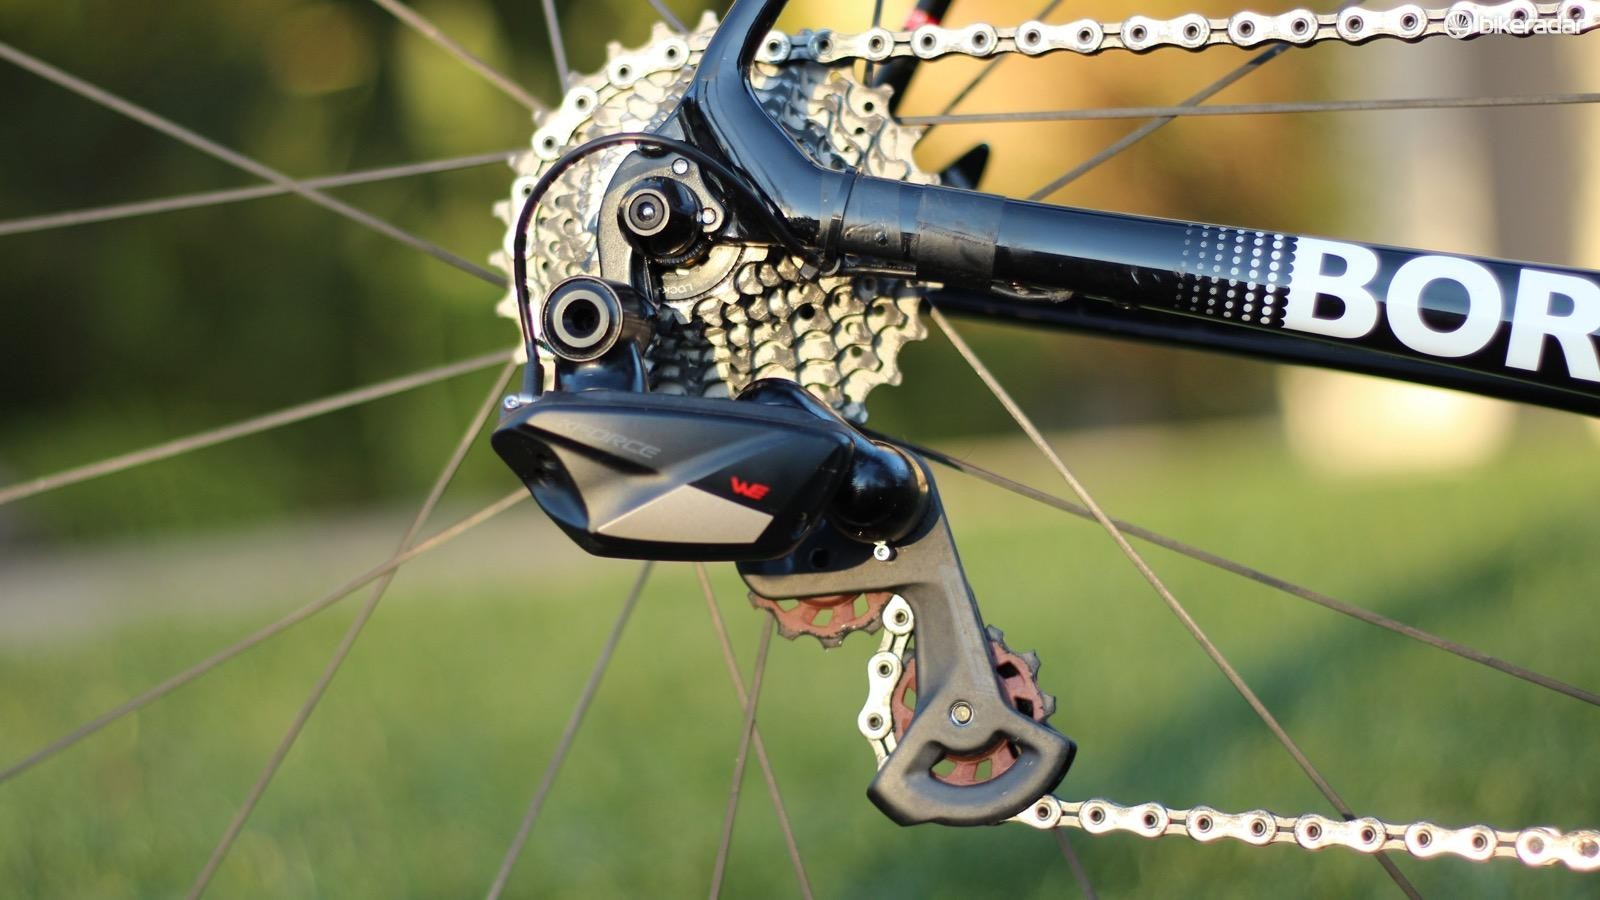 The rear derailleur works smoothly if not as fast as Shimano Di2. The wire is for power, not shifting